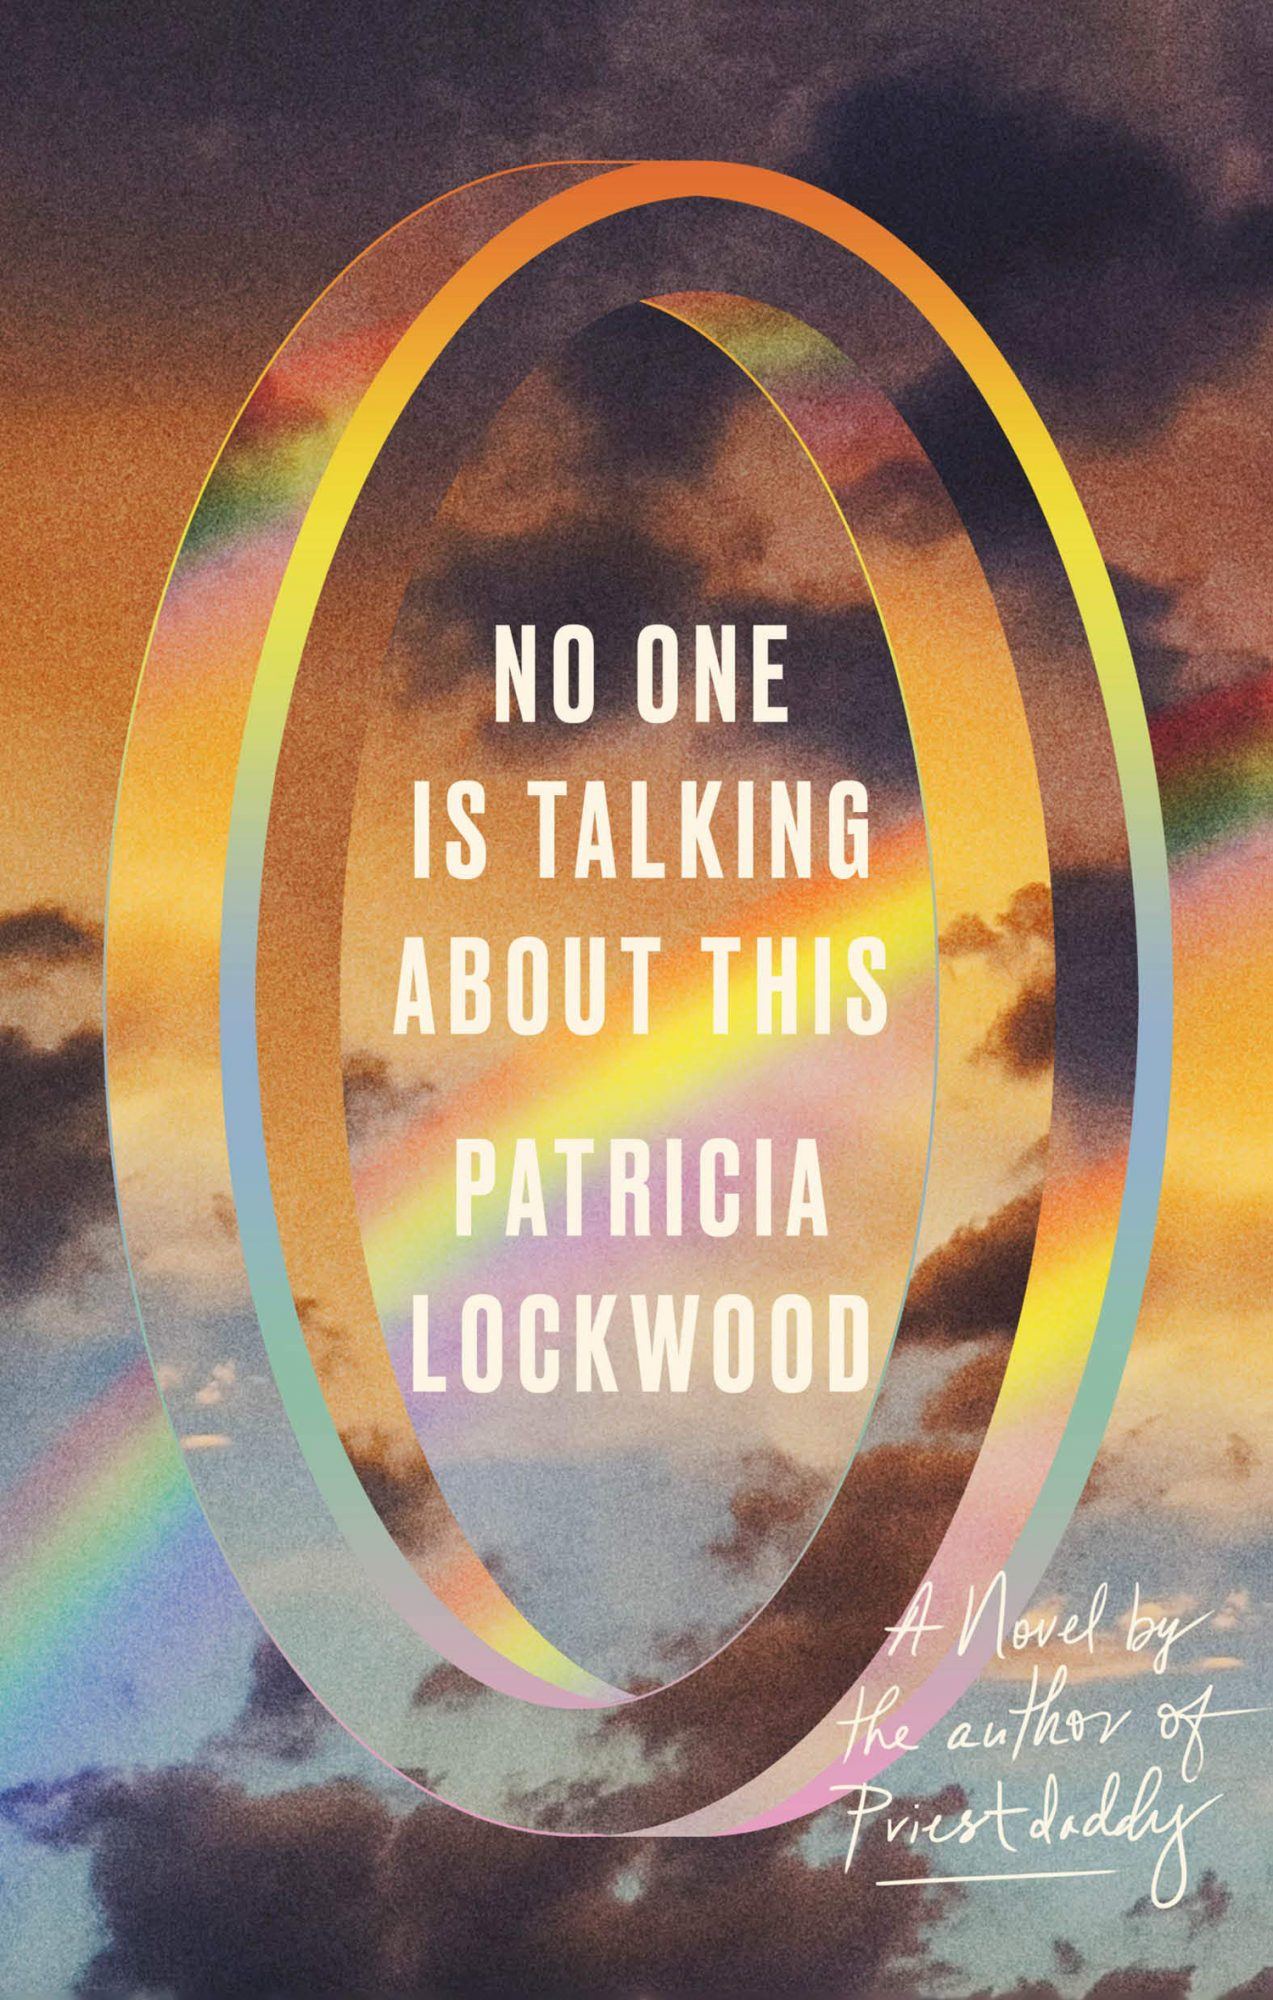 No One Is Talking About This: A Novel by Patricia Lockwood